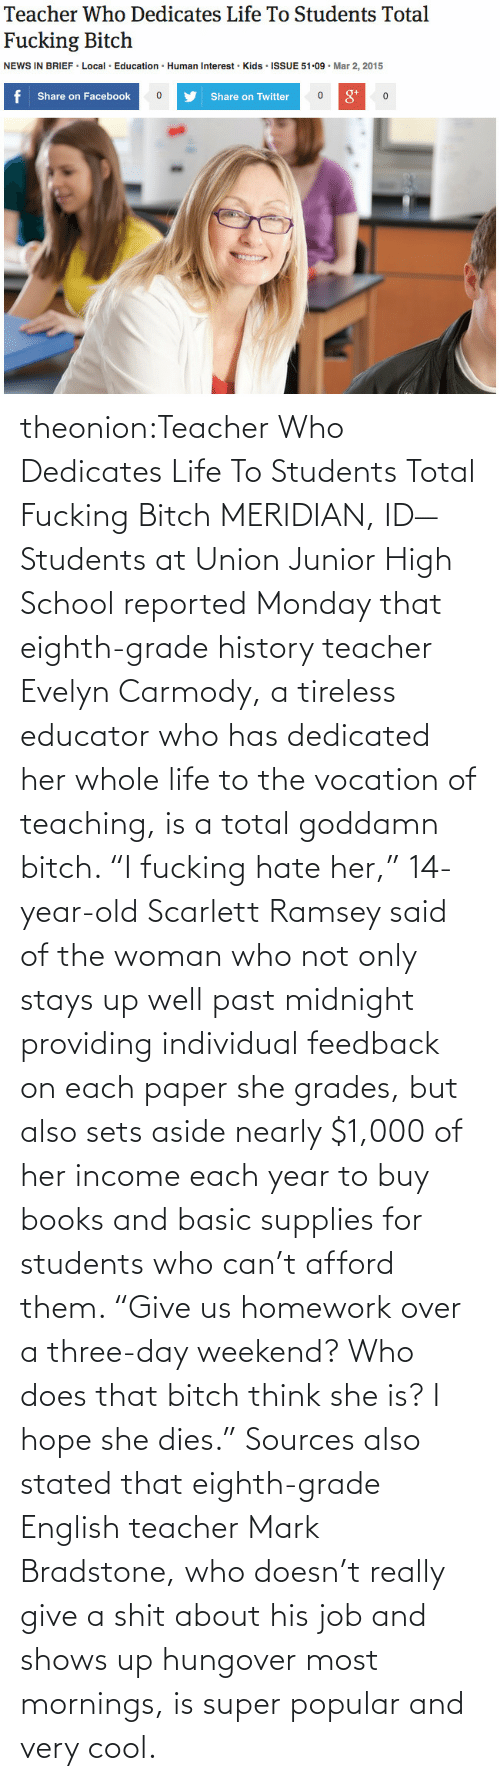 """Educator: Teacher Who Dedicates Life To Students Total  Fucking Bitch  NEWS IN BRIEF • Local · Education · Human Interest · Kids · ISSUE 51-09 · Mar 2, 2015  f Share on Facebook  8*  Share on Twitter theonion:Teacher Who Dedicates Life To Students Total Fucking BitchMERIDIAN, ID—Students at Union Junior High School reported Monday that eighth-grade history teacher Evelyn Carmody, a tireless educator who has dedicated her whole life to the vocation of teaching, is a total goddamn bitch. """"I fucking hate her,"""" 14-year-old Scarlett Ramsey said of the woman who not only stays up well past midnight providing individual  feedback on each paper she grades, but also sets aside nearly $1,000 of  her income each year to buy books and basic supplies for students who  can't afford them. """"Give us homework over a three-day weekend? Who does  that bitch think she is? I hope she dies."""" Sources also stated that  eighth-grade English teacher Mark Bradstone, who doesn't really give a  shit about his job and shows up hungover most mornings, is super popular  and very cool."""